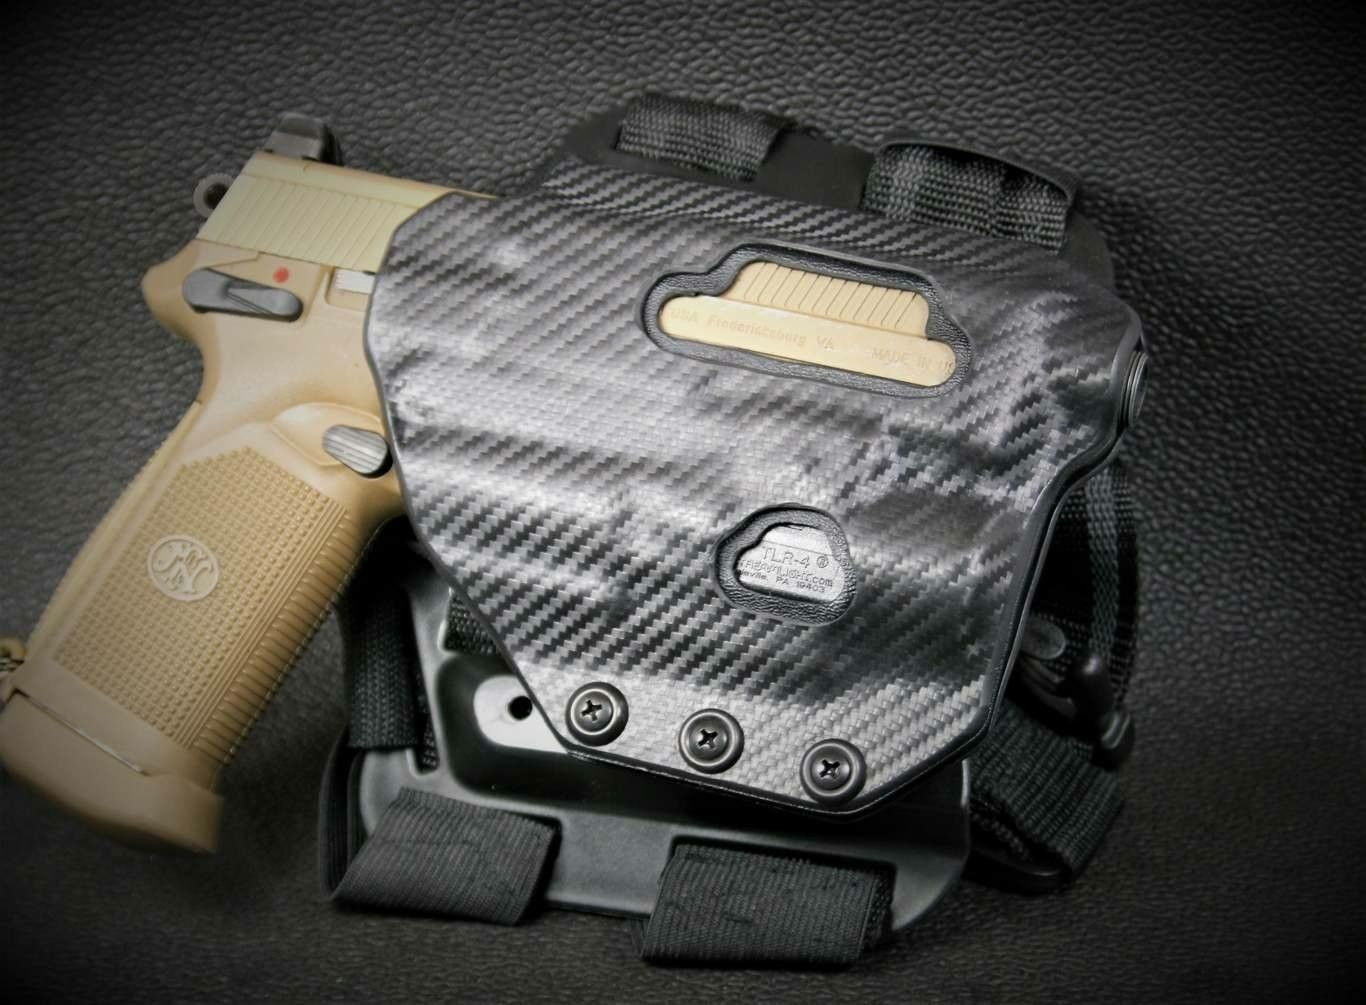 Ethos Survival - New drop leg holster for a FNX 45 Tactical